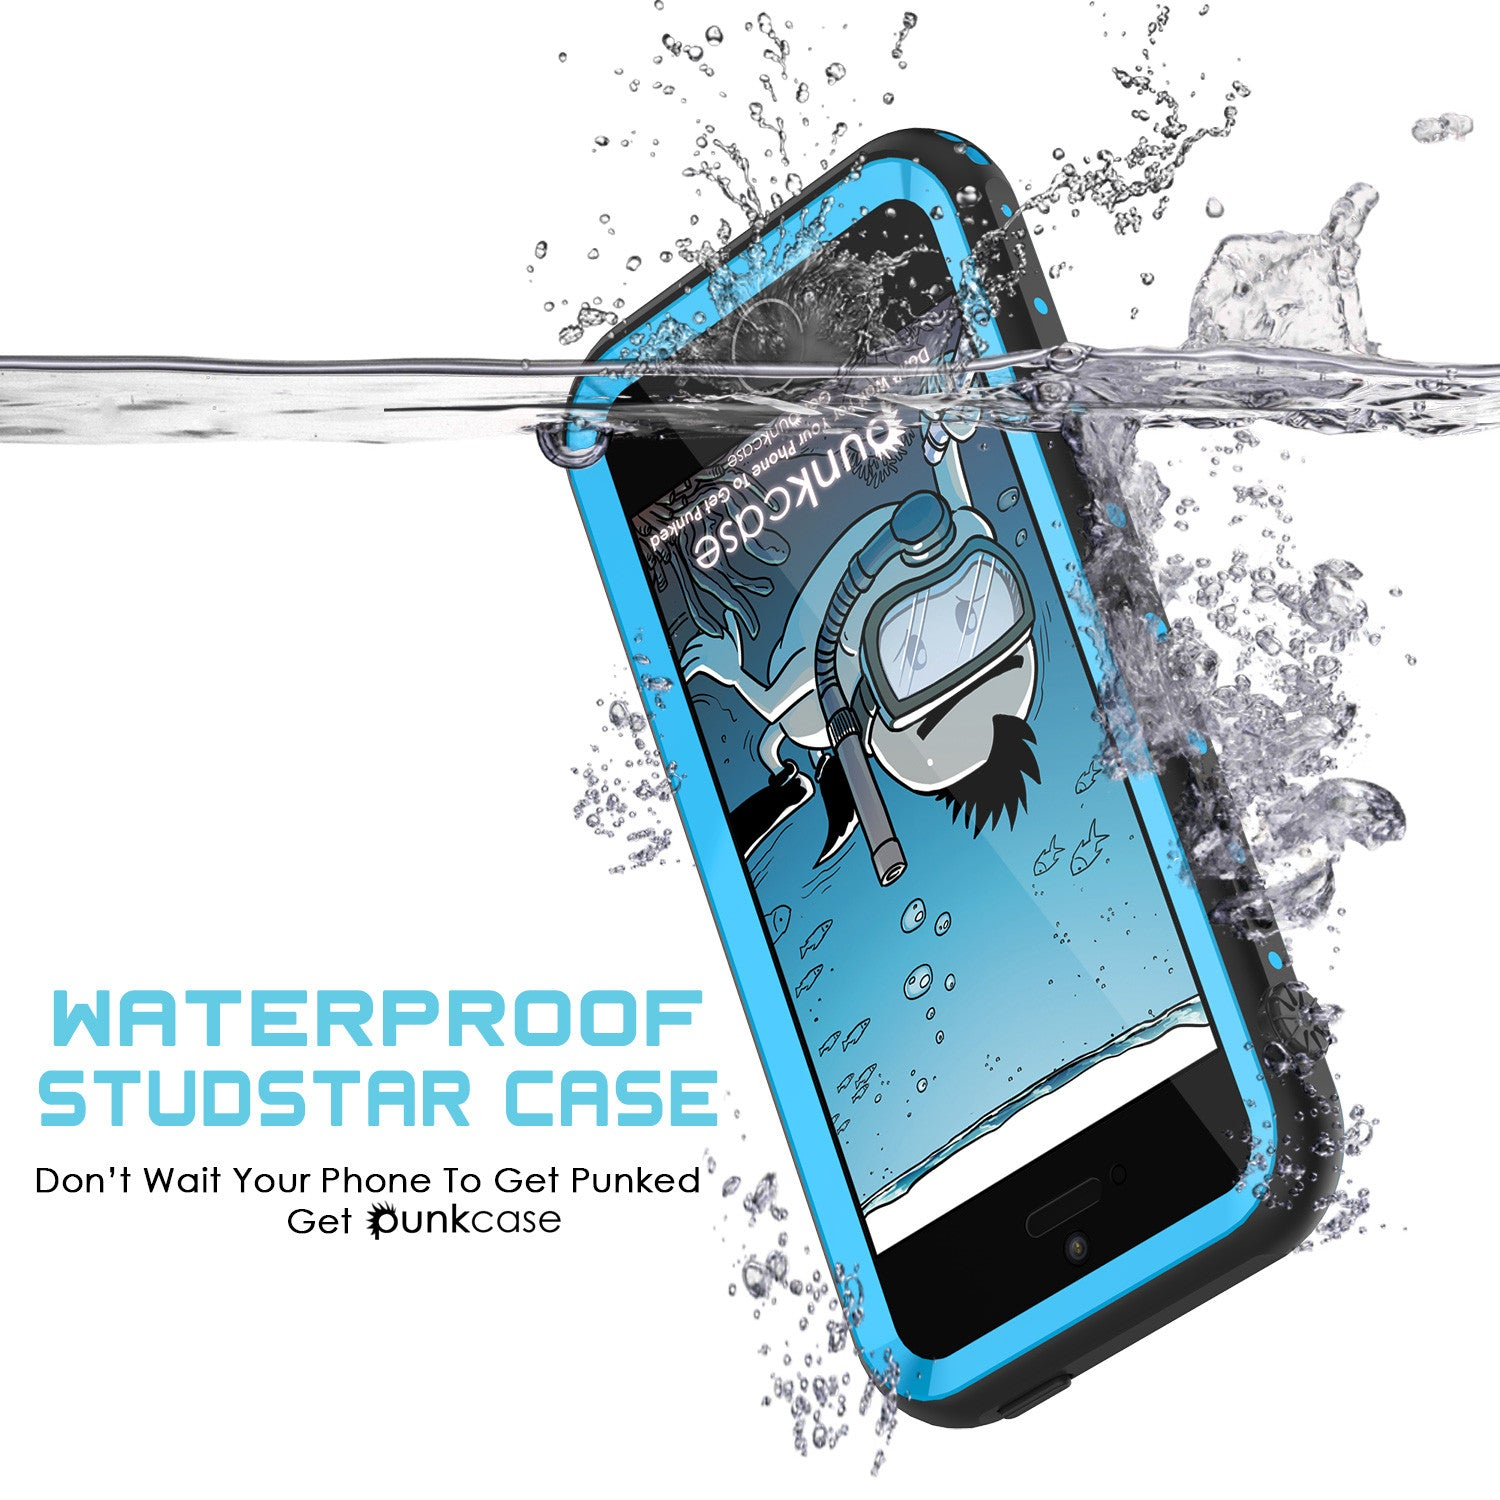 iPhone SE/5S/5 Waterproof Case PunkCase StudStar Light Blue Shock/Dirt/Snow Proof, Lifetime Warranty